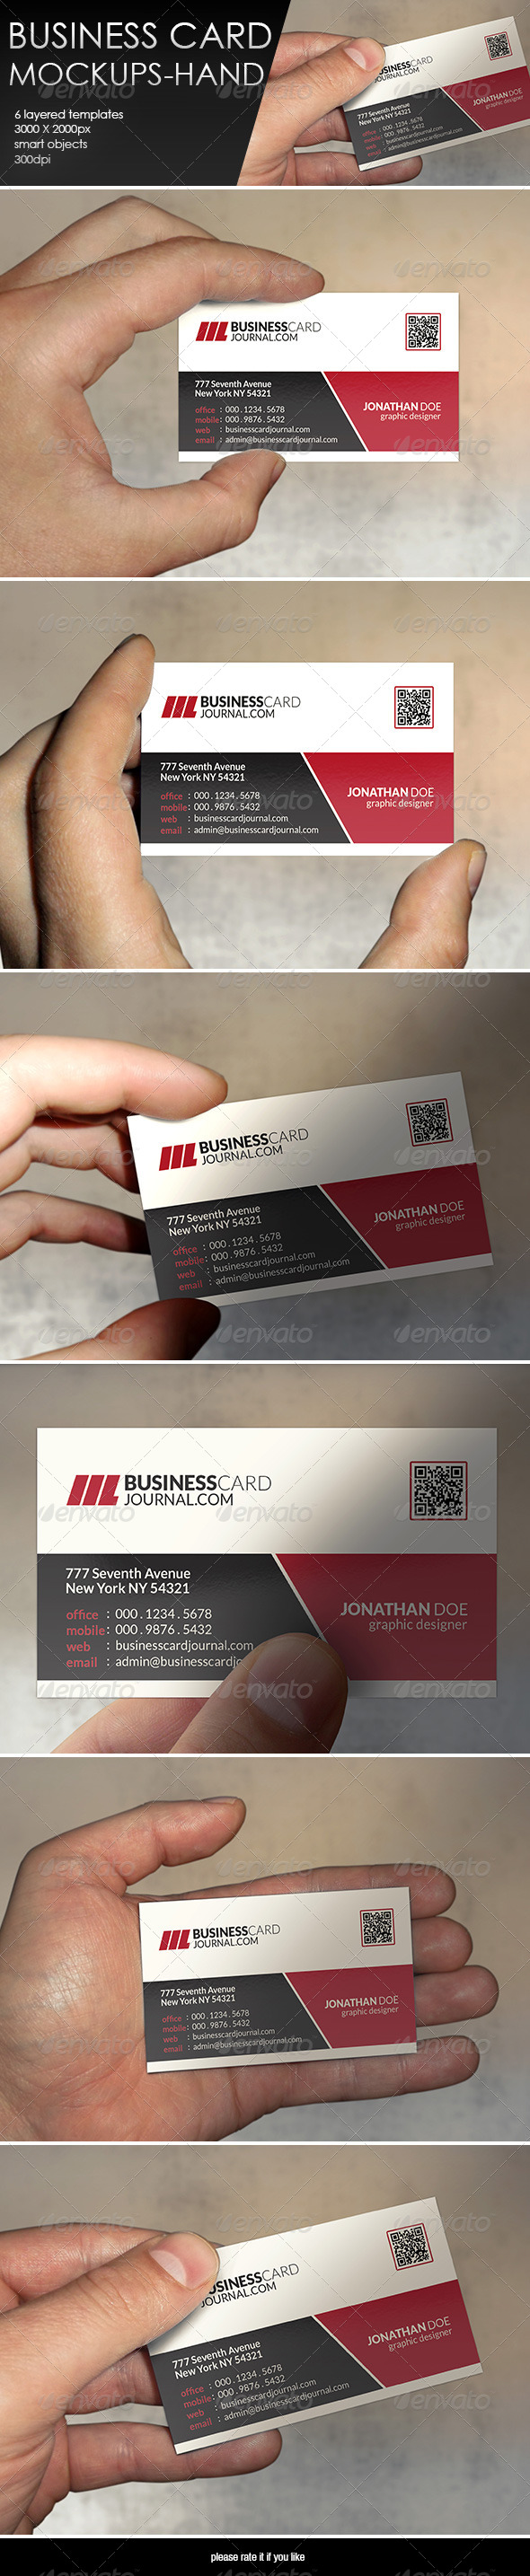 GraphicRiver Business Card MockUp-Hand 8232625